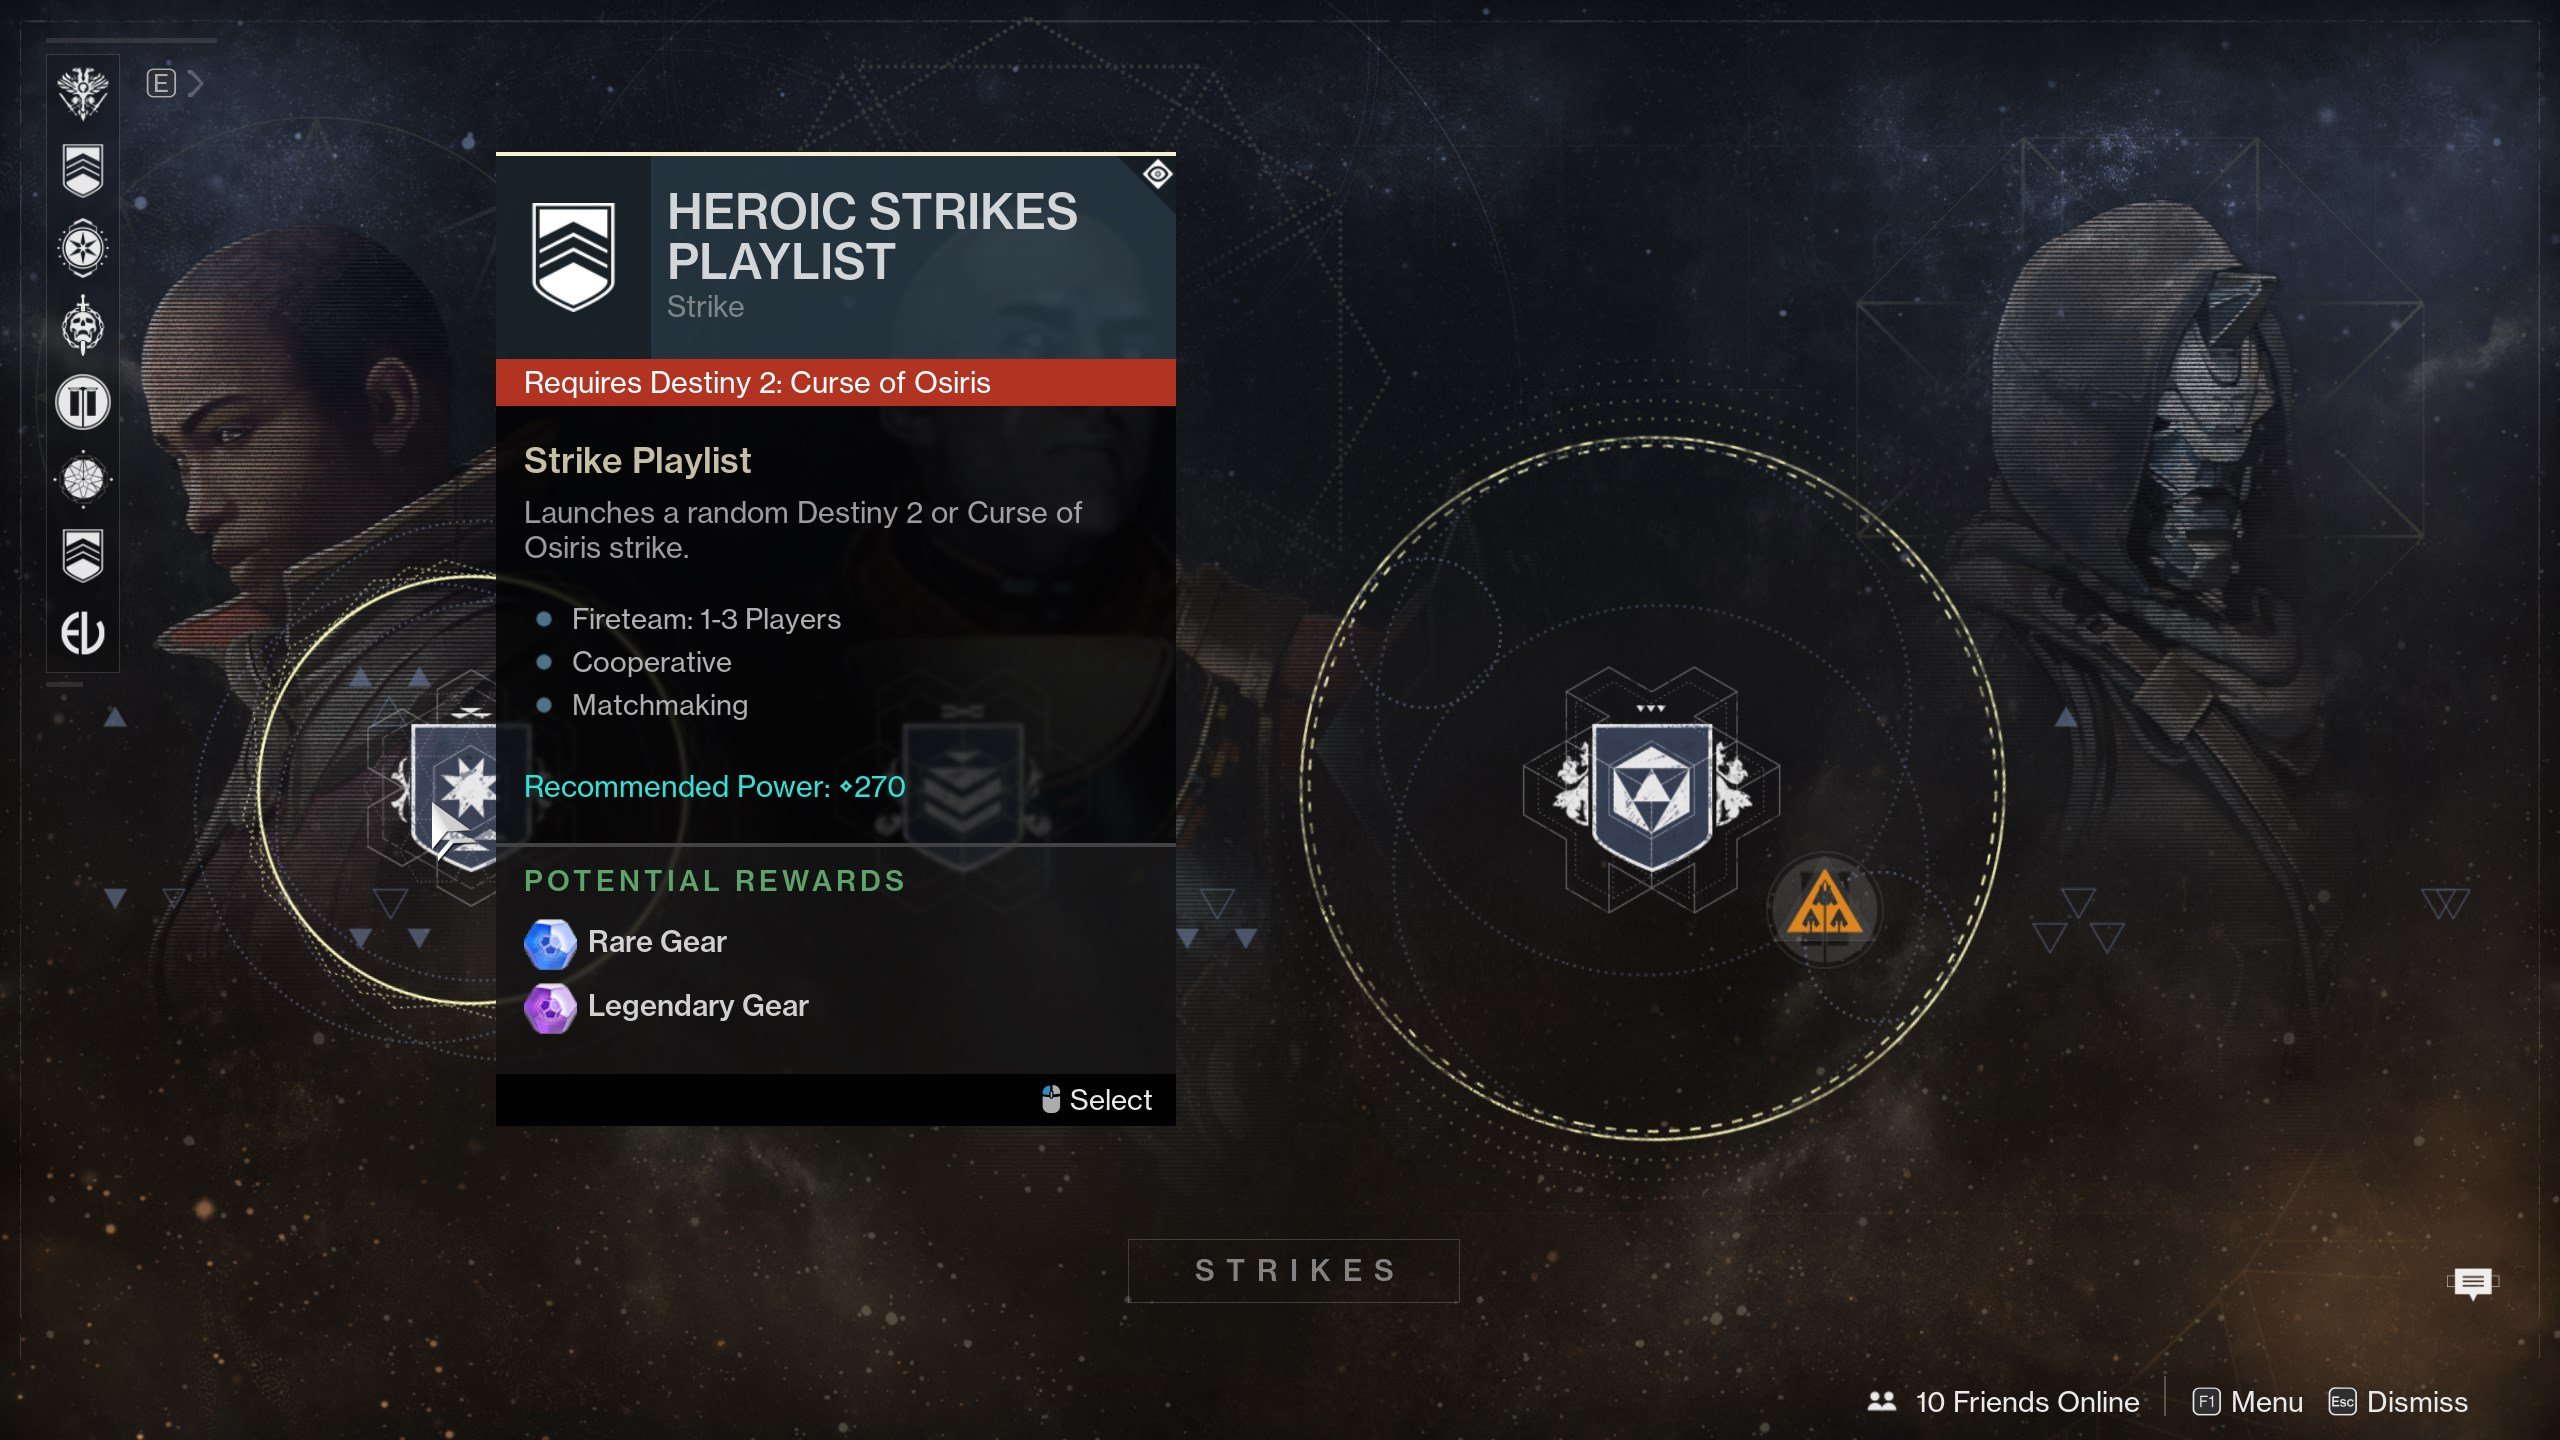 Future 2: Curse of Osiris - courageous strike playlist locked